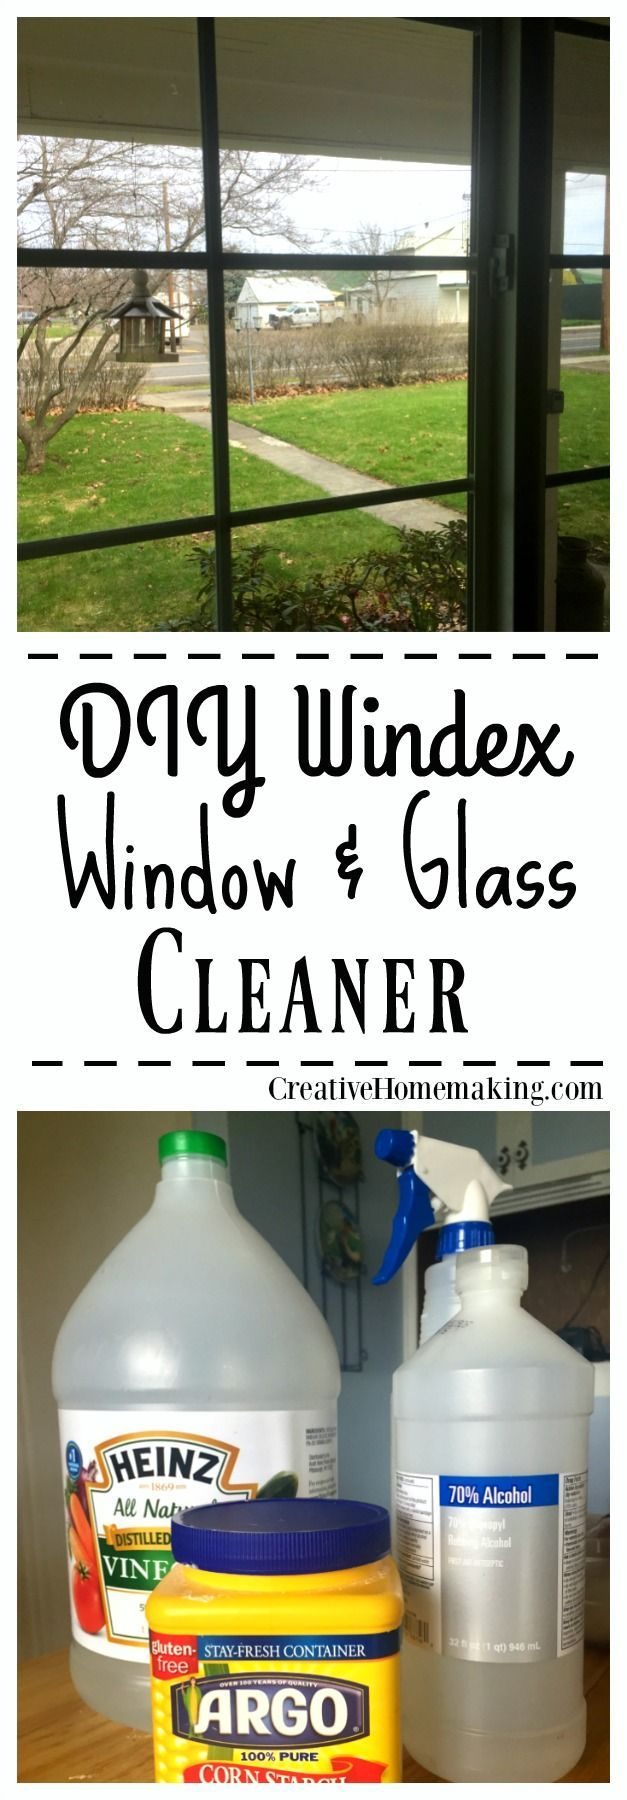 Info's : This DIY window and glass cleaner cleans as well as Windex. It is also non-toxic and costs less than fifty cents a bottle to make.